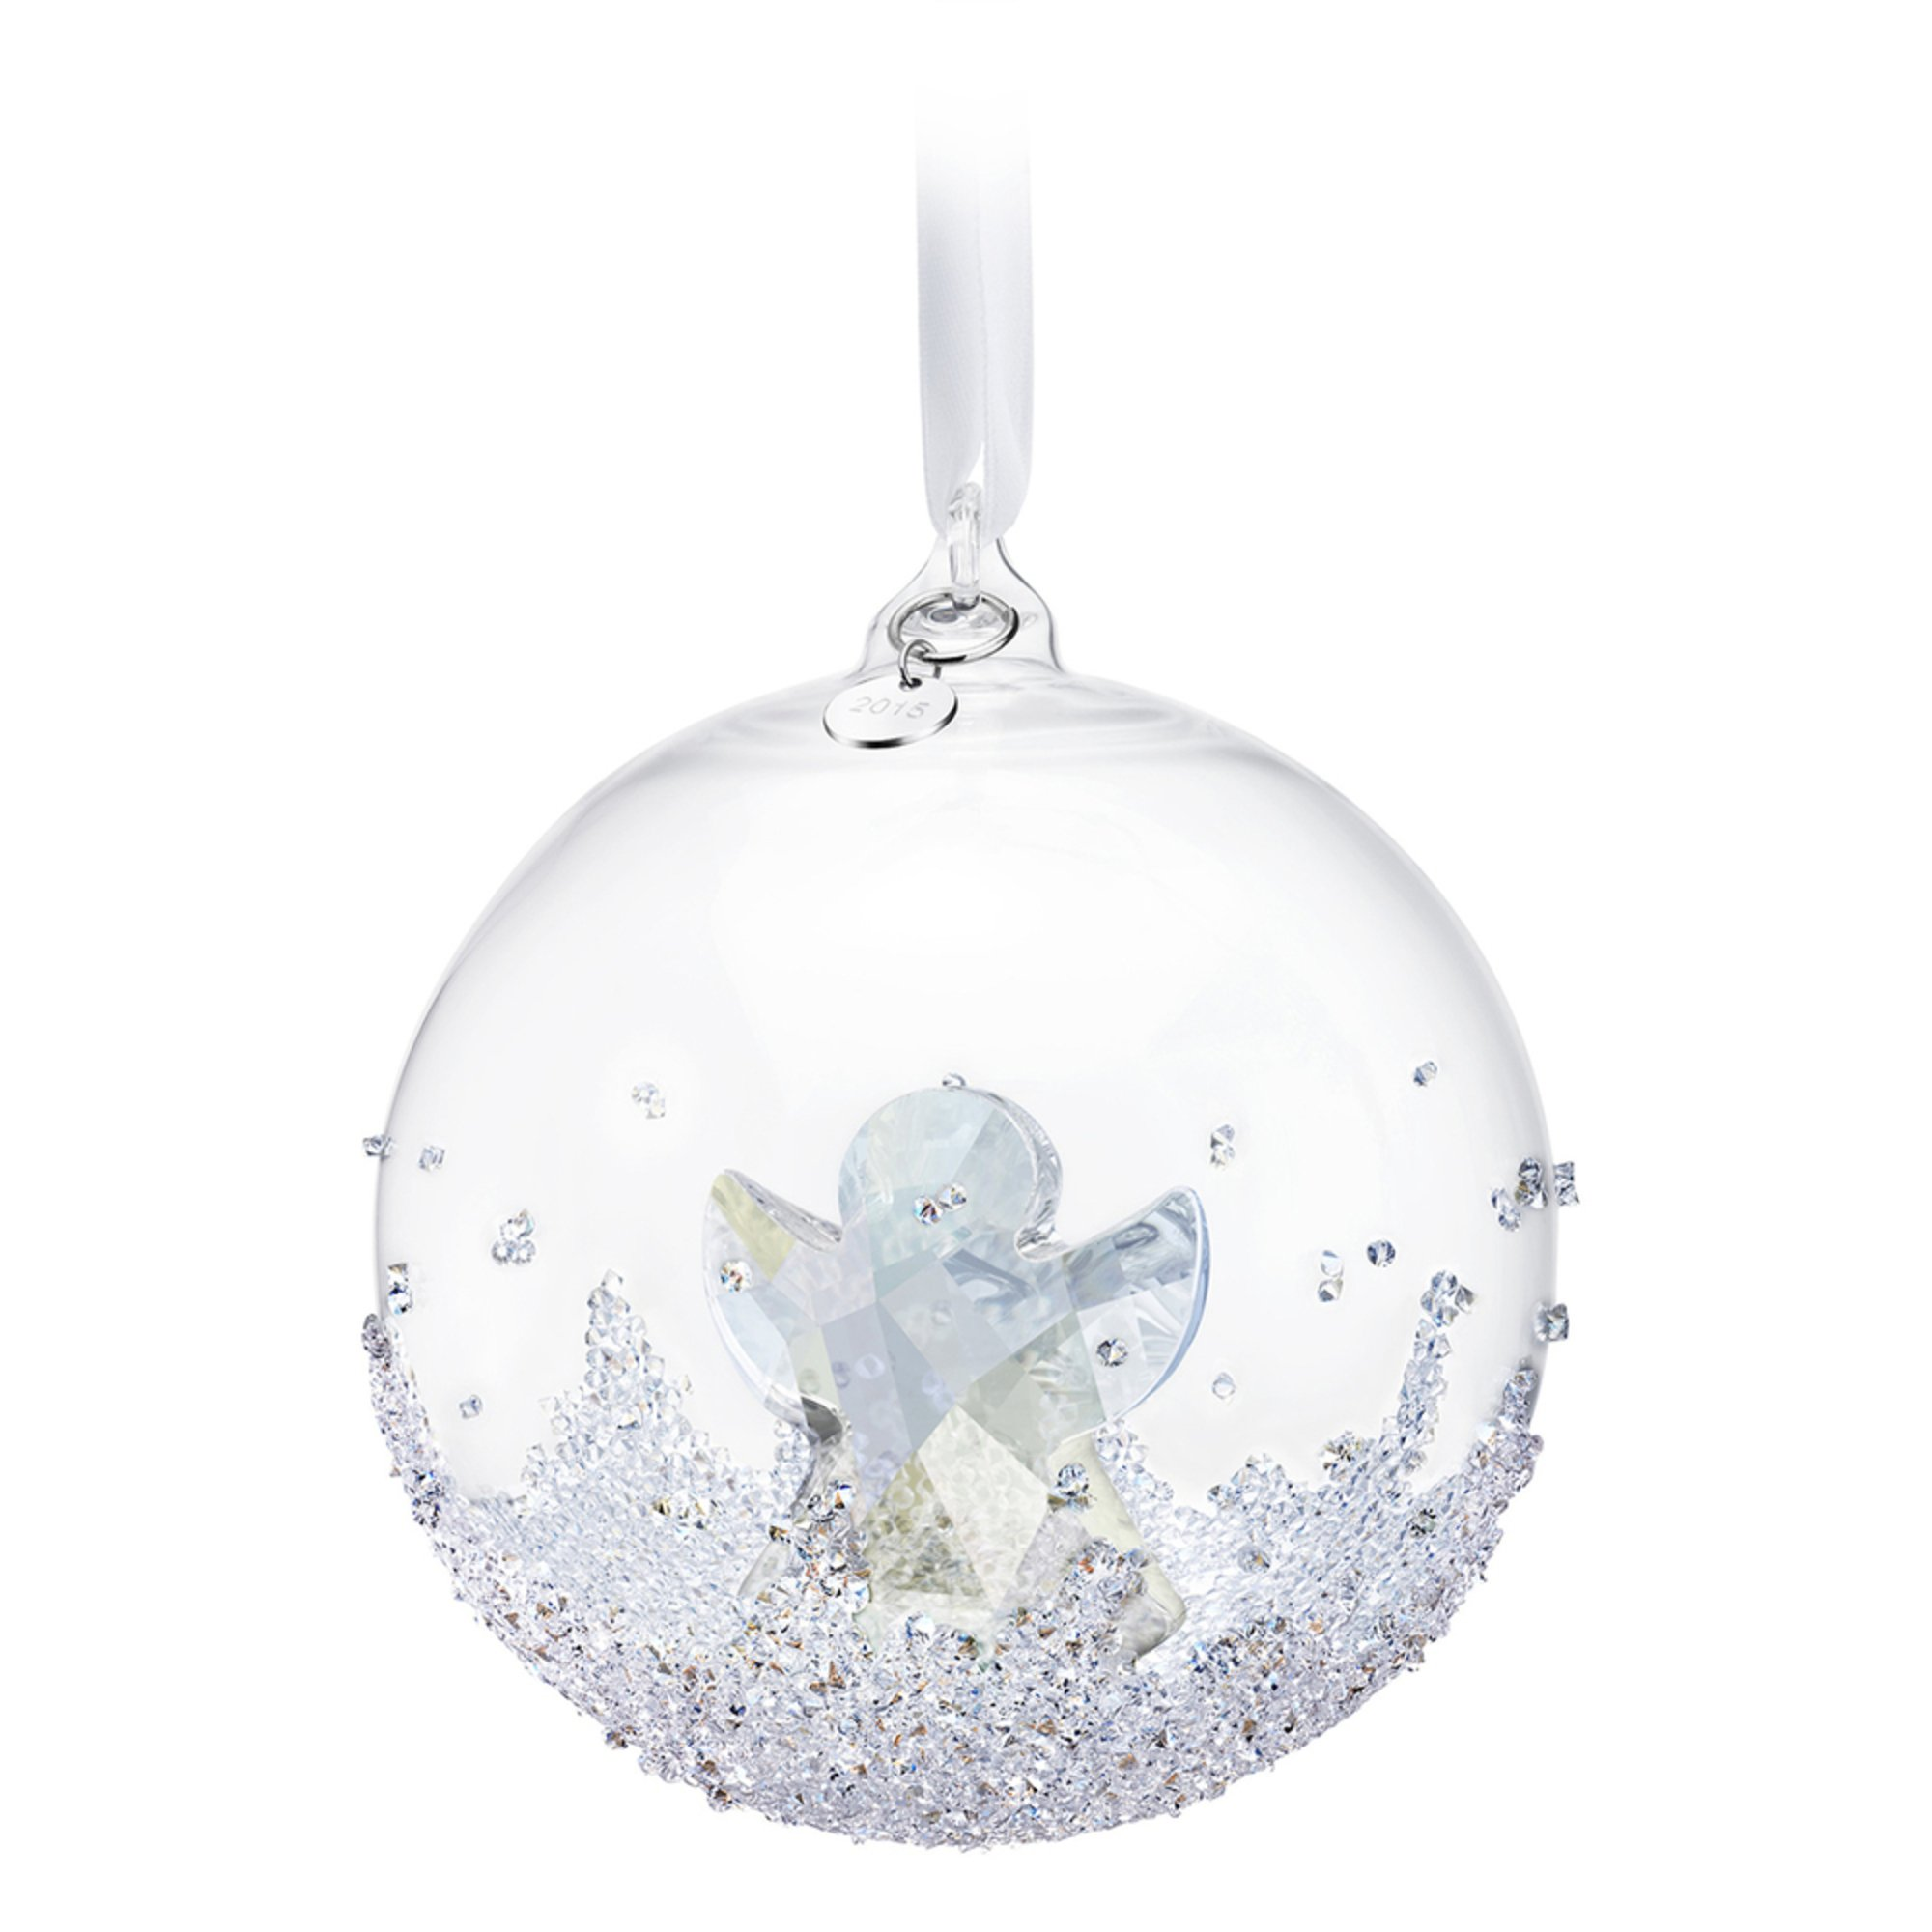 Swarovski christmas ball ornament a e 2015 ornaments for Christmas ornament sale clearance